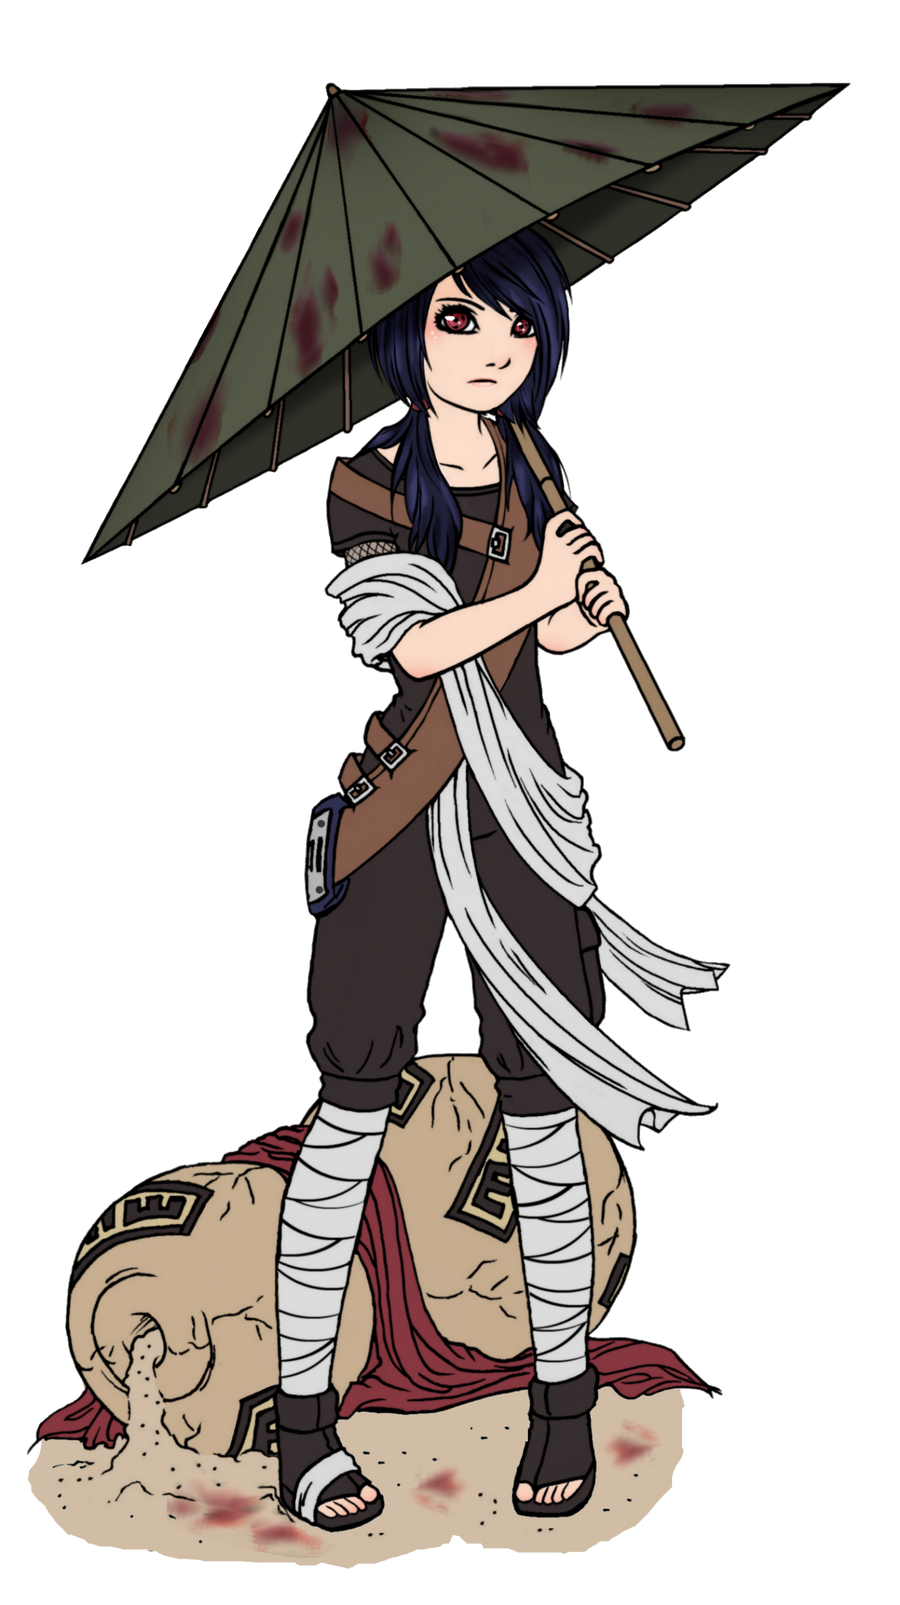 Contest narutooc by cuine on deviantart for Cuine